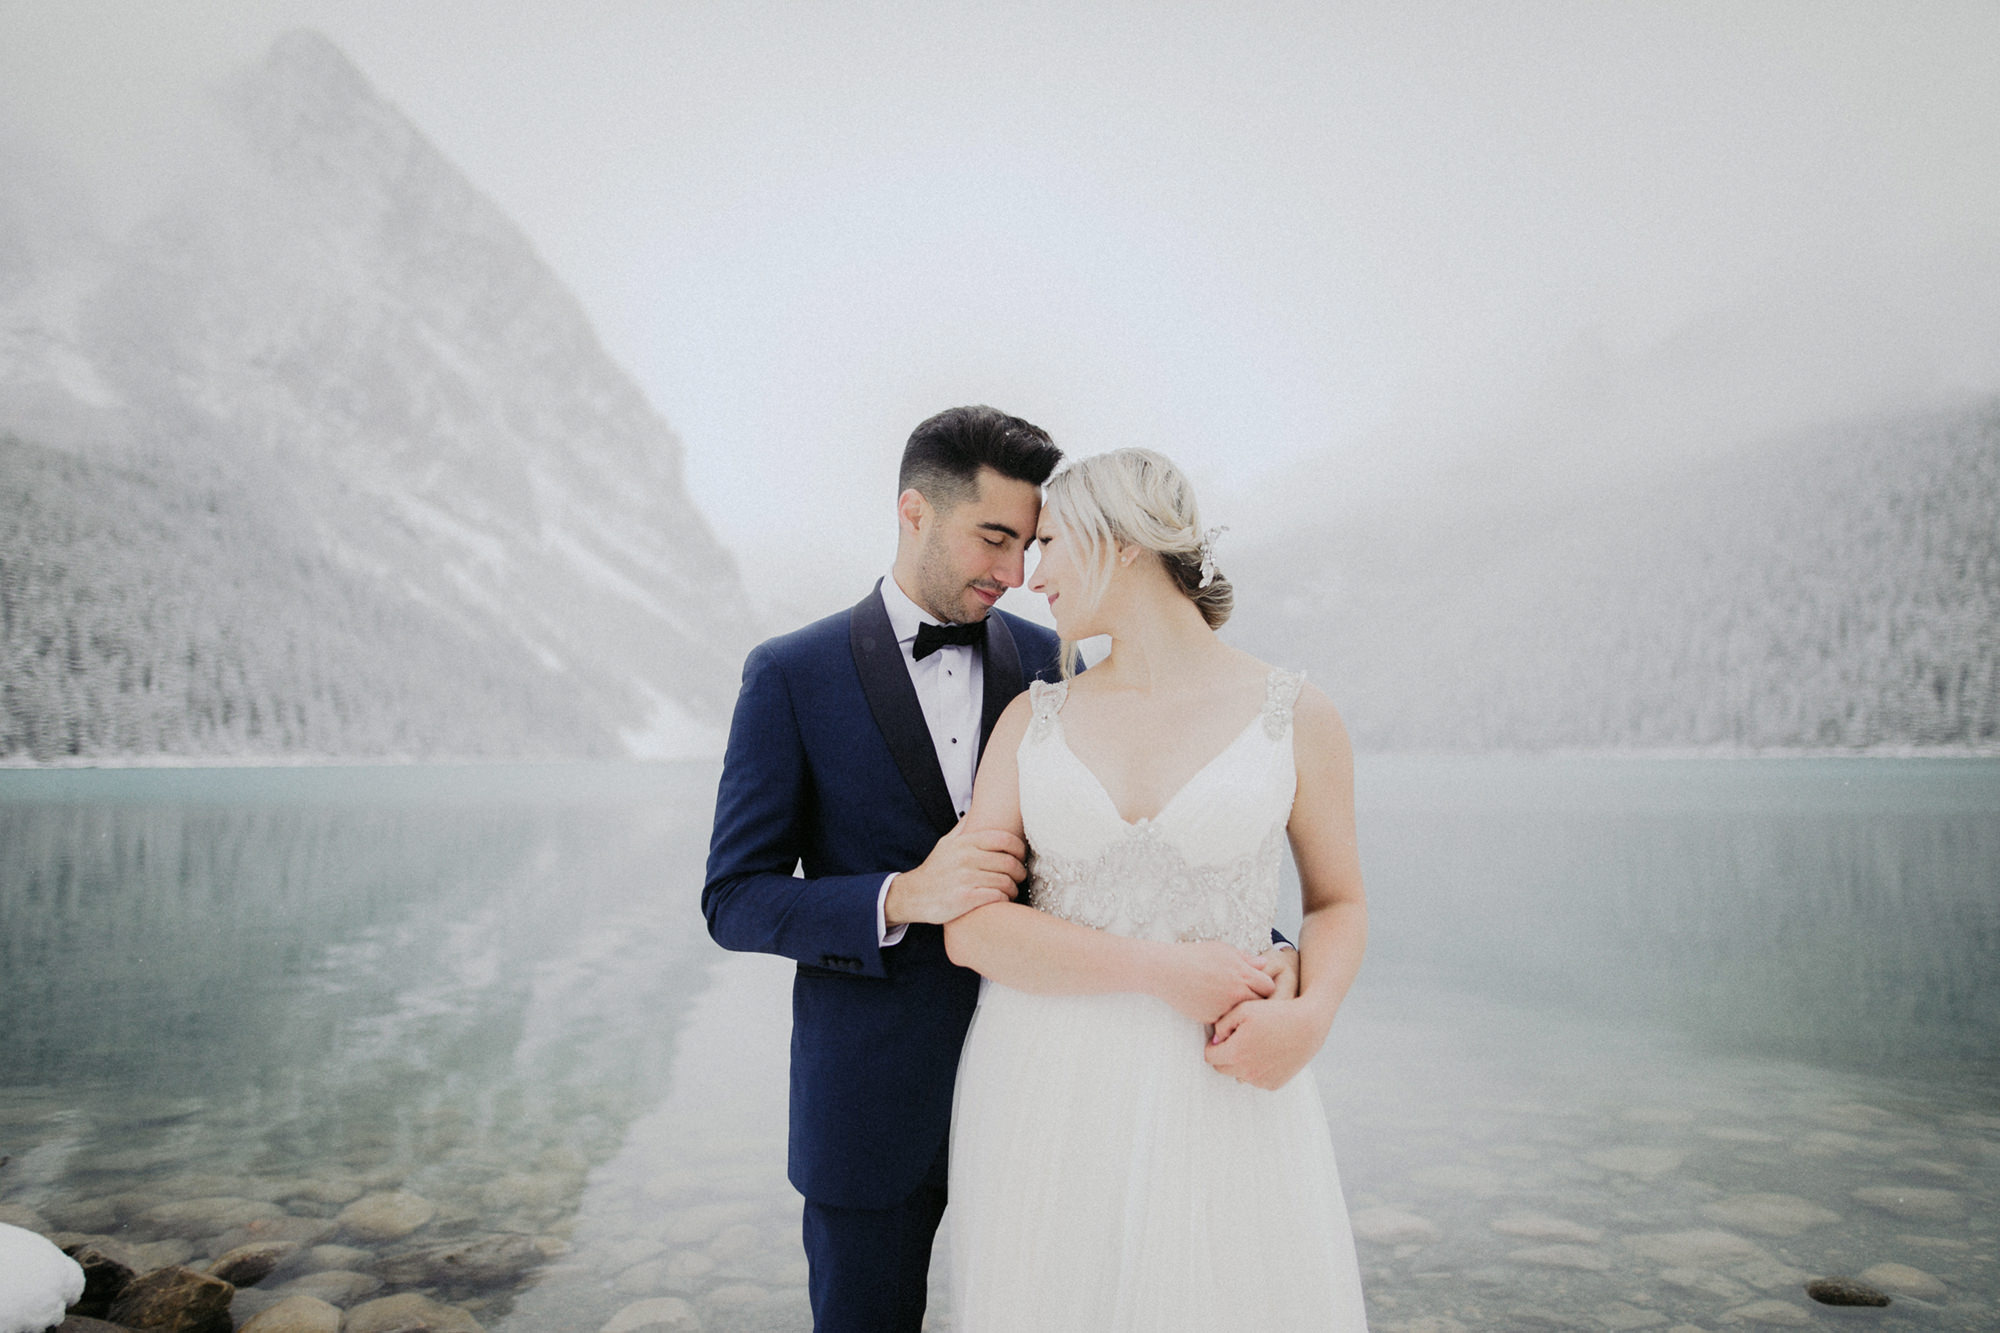 Lake Louise Winter Wedding -20.JPG